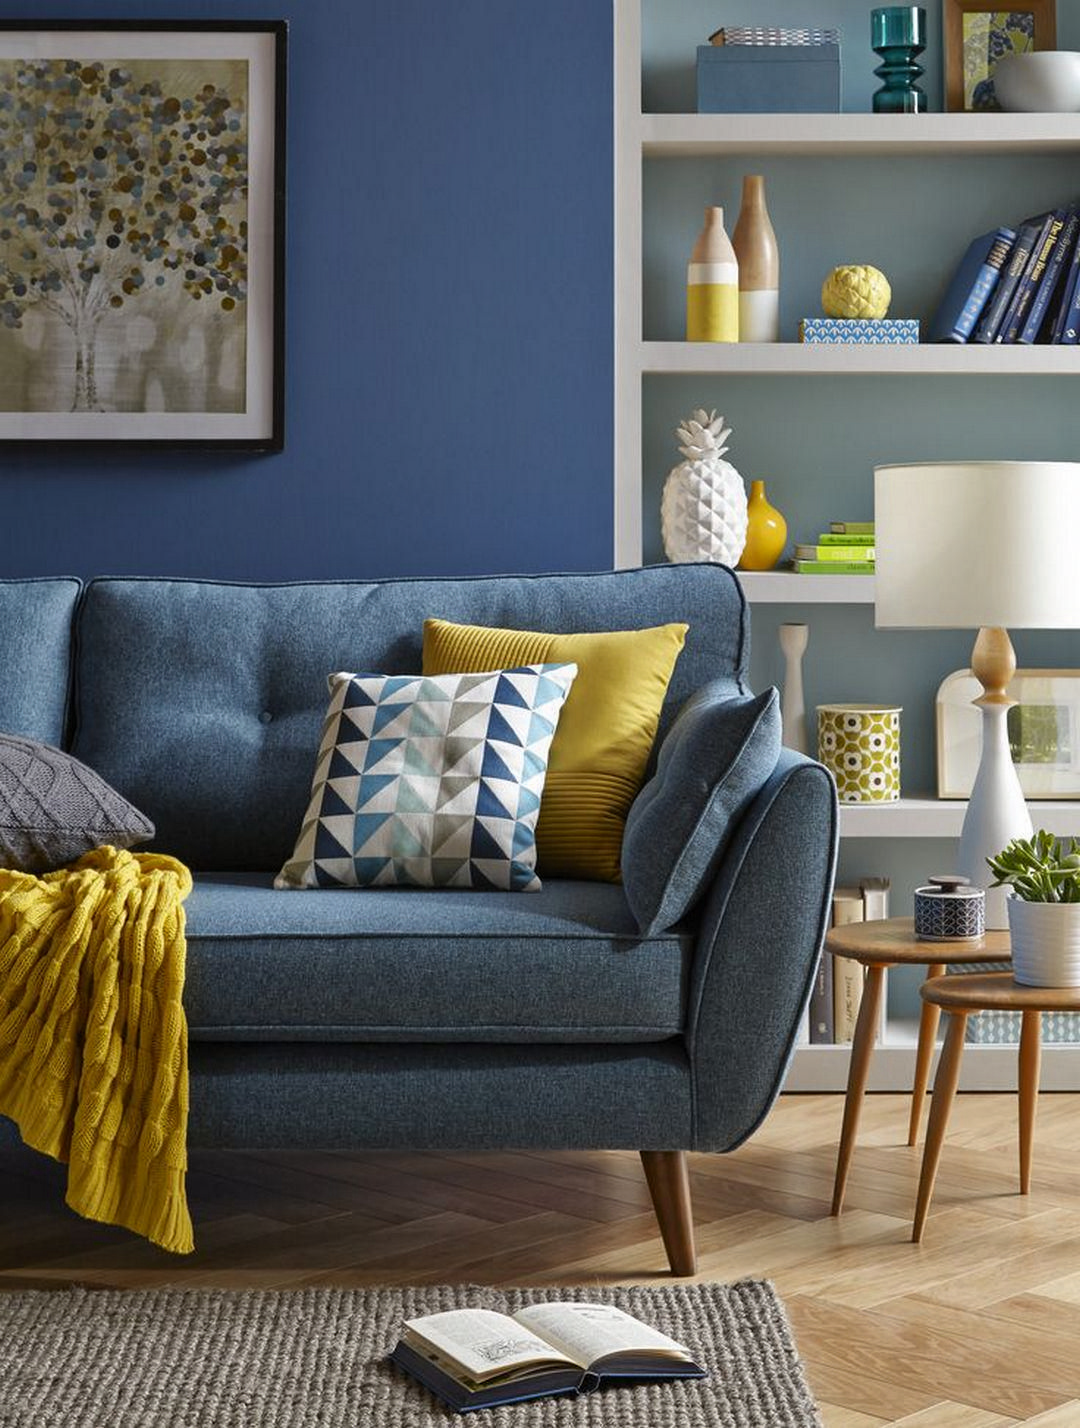 Exciting Living Room Black Read Our Site For A Whole Lot More Creative Concepts Livingroomb Yellow Living Room Modern Sofa Designs Yellow Decor Living Room